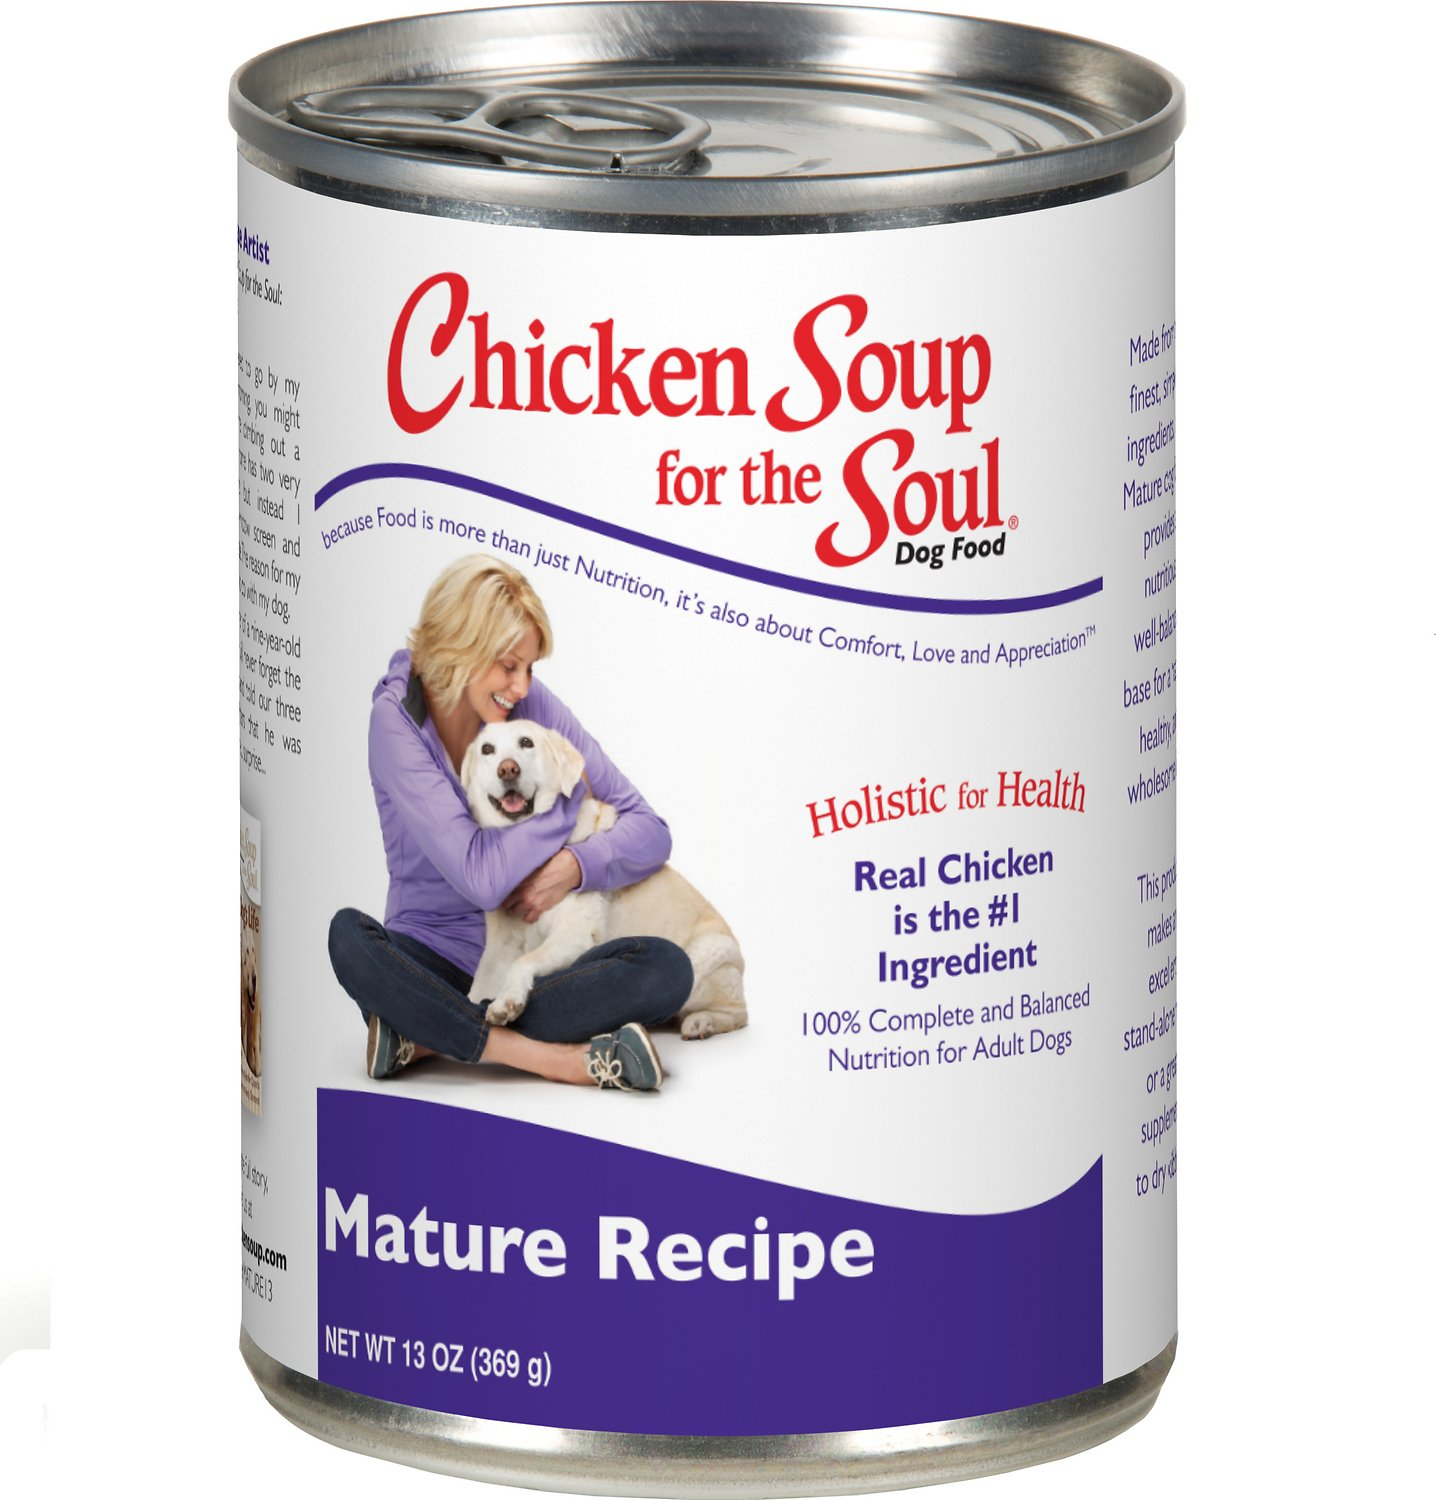 Chicken Soup for the Soul Mature Canned Dog Food, 13-oz